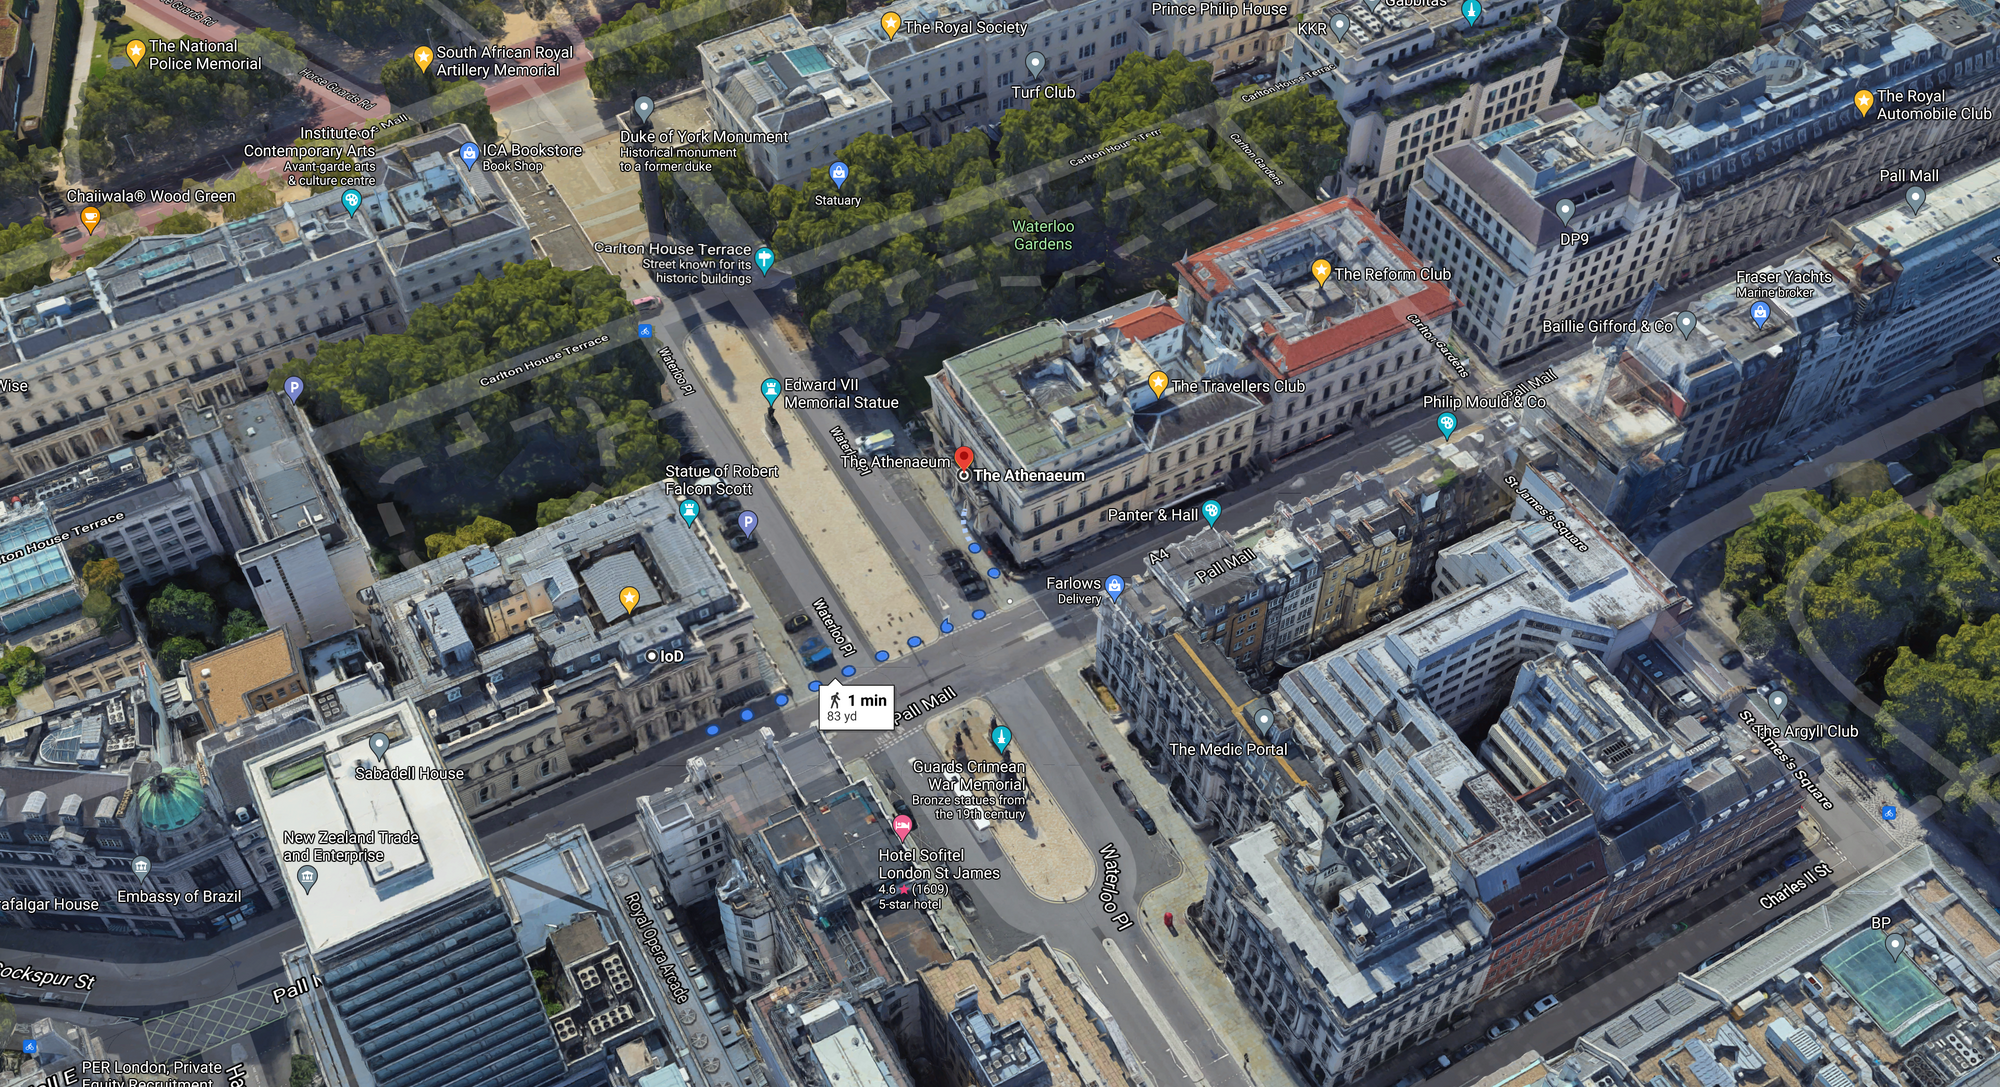 Aerial view of (L) Institute of Directors and (R) The Athenaeum Club along Pall Mall: Google Earth 2021